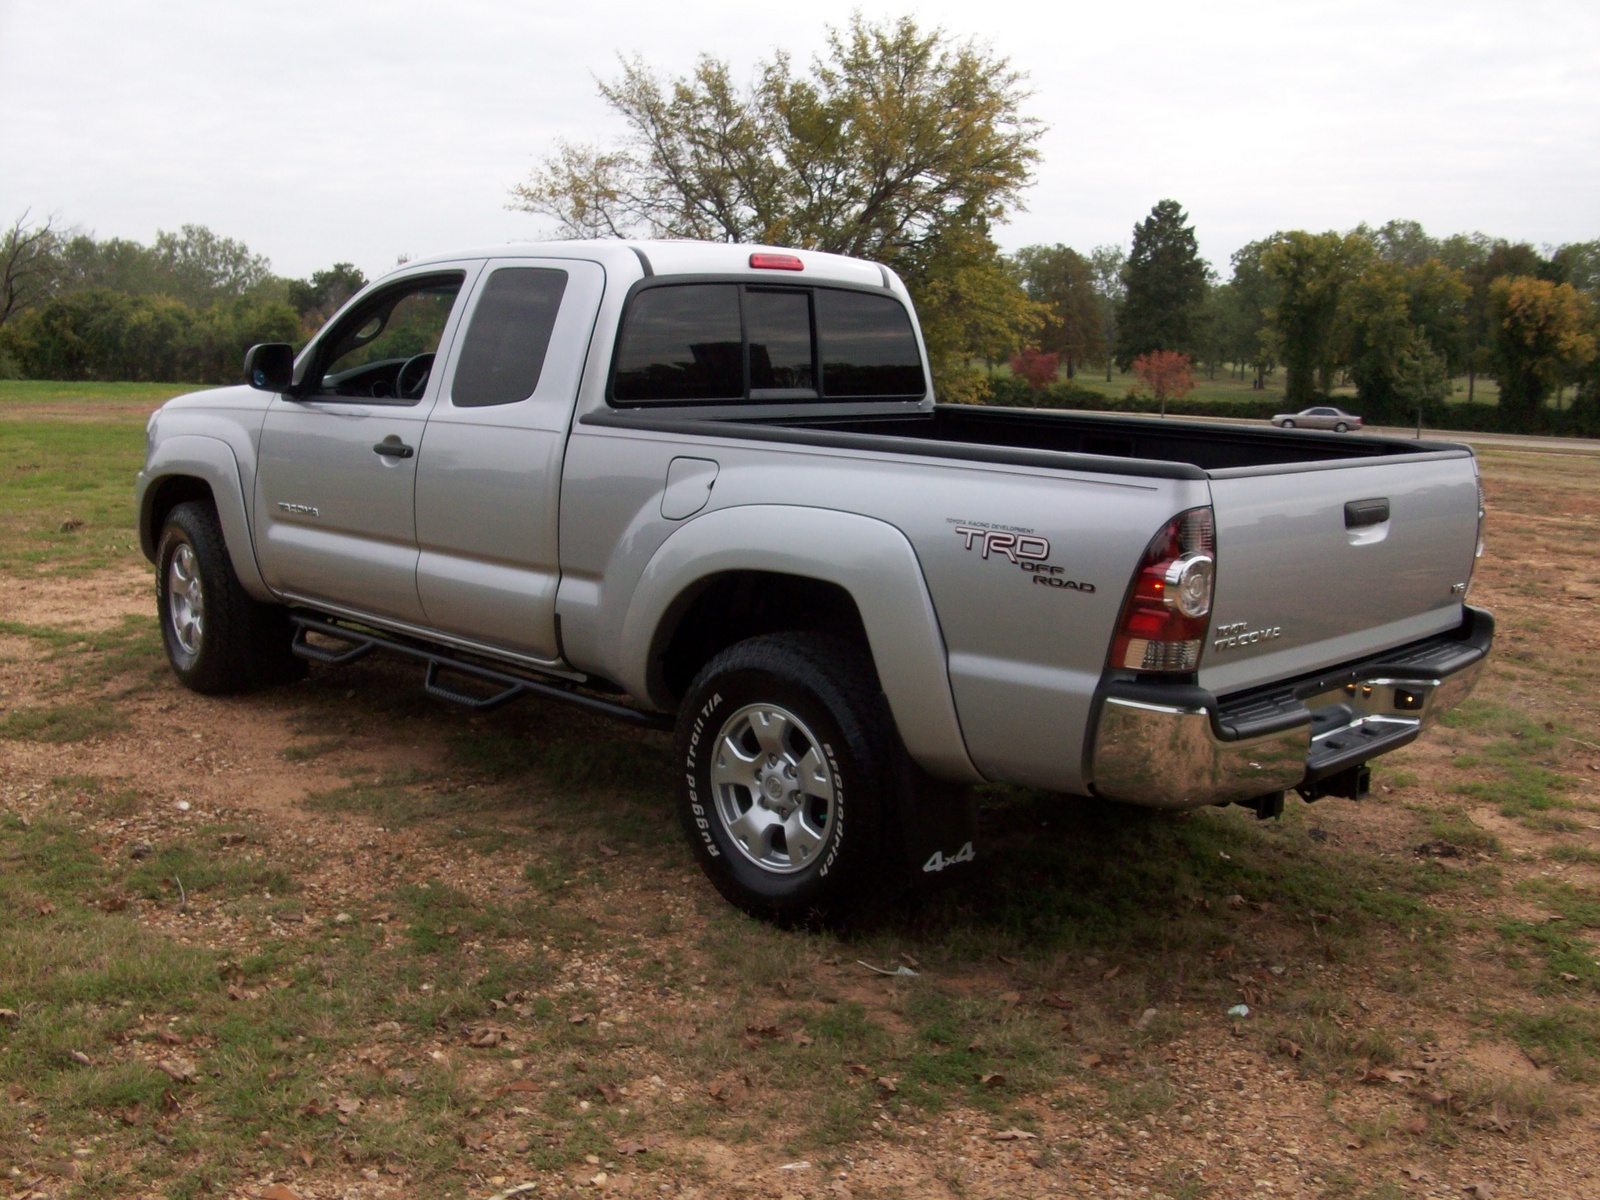 2011 toyota tacoma pictures cargurus. Black Bedroom Furniture Sets. Home Design Ideas